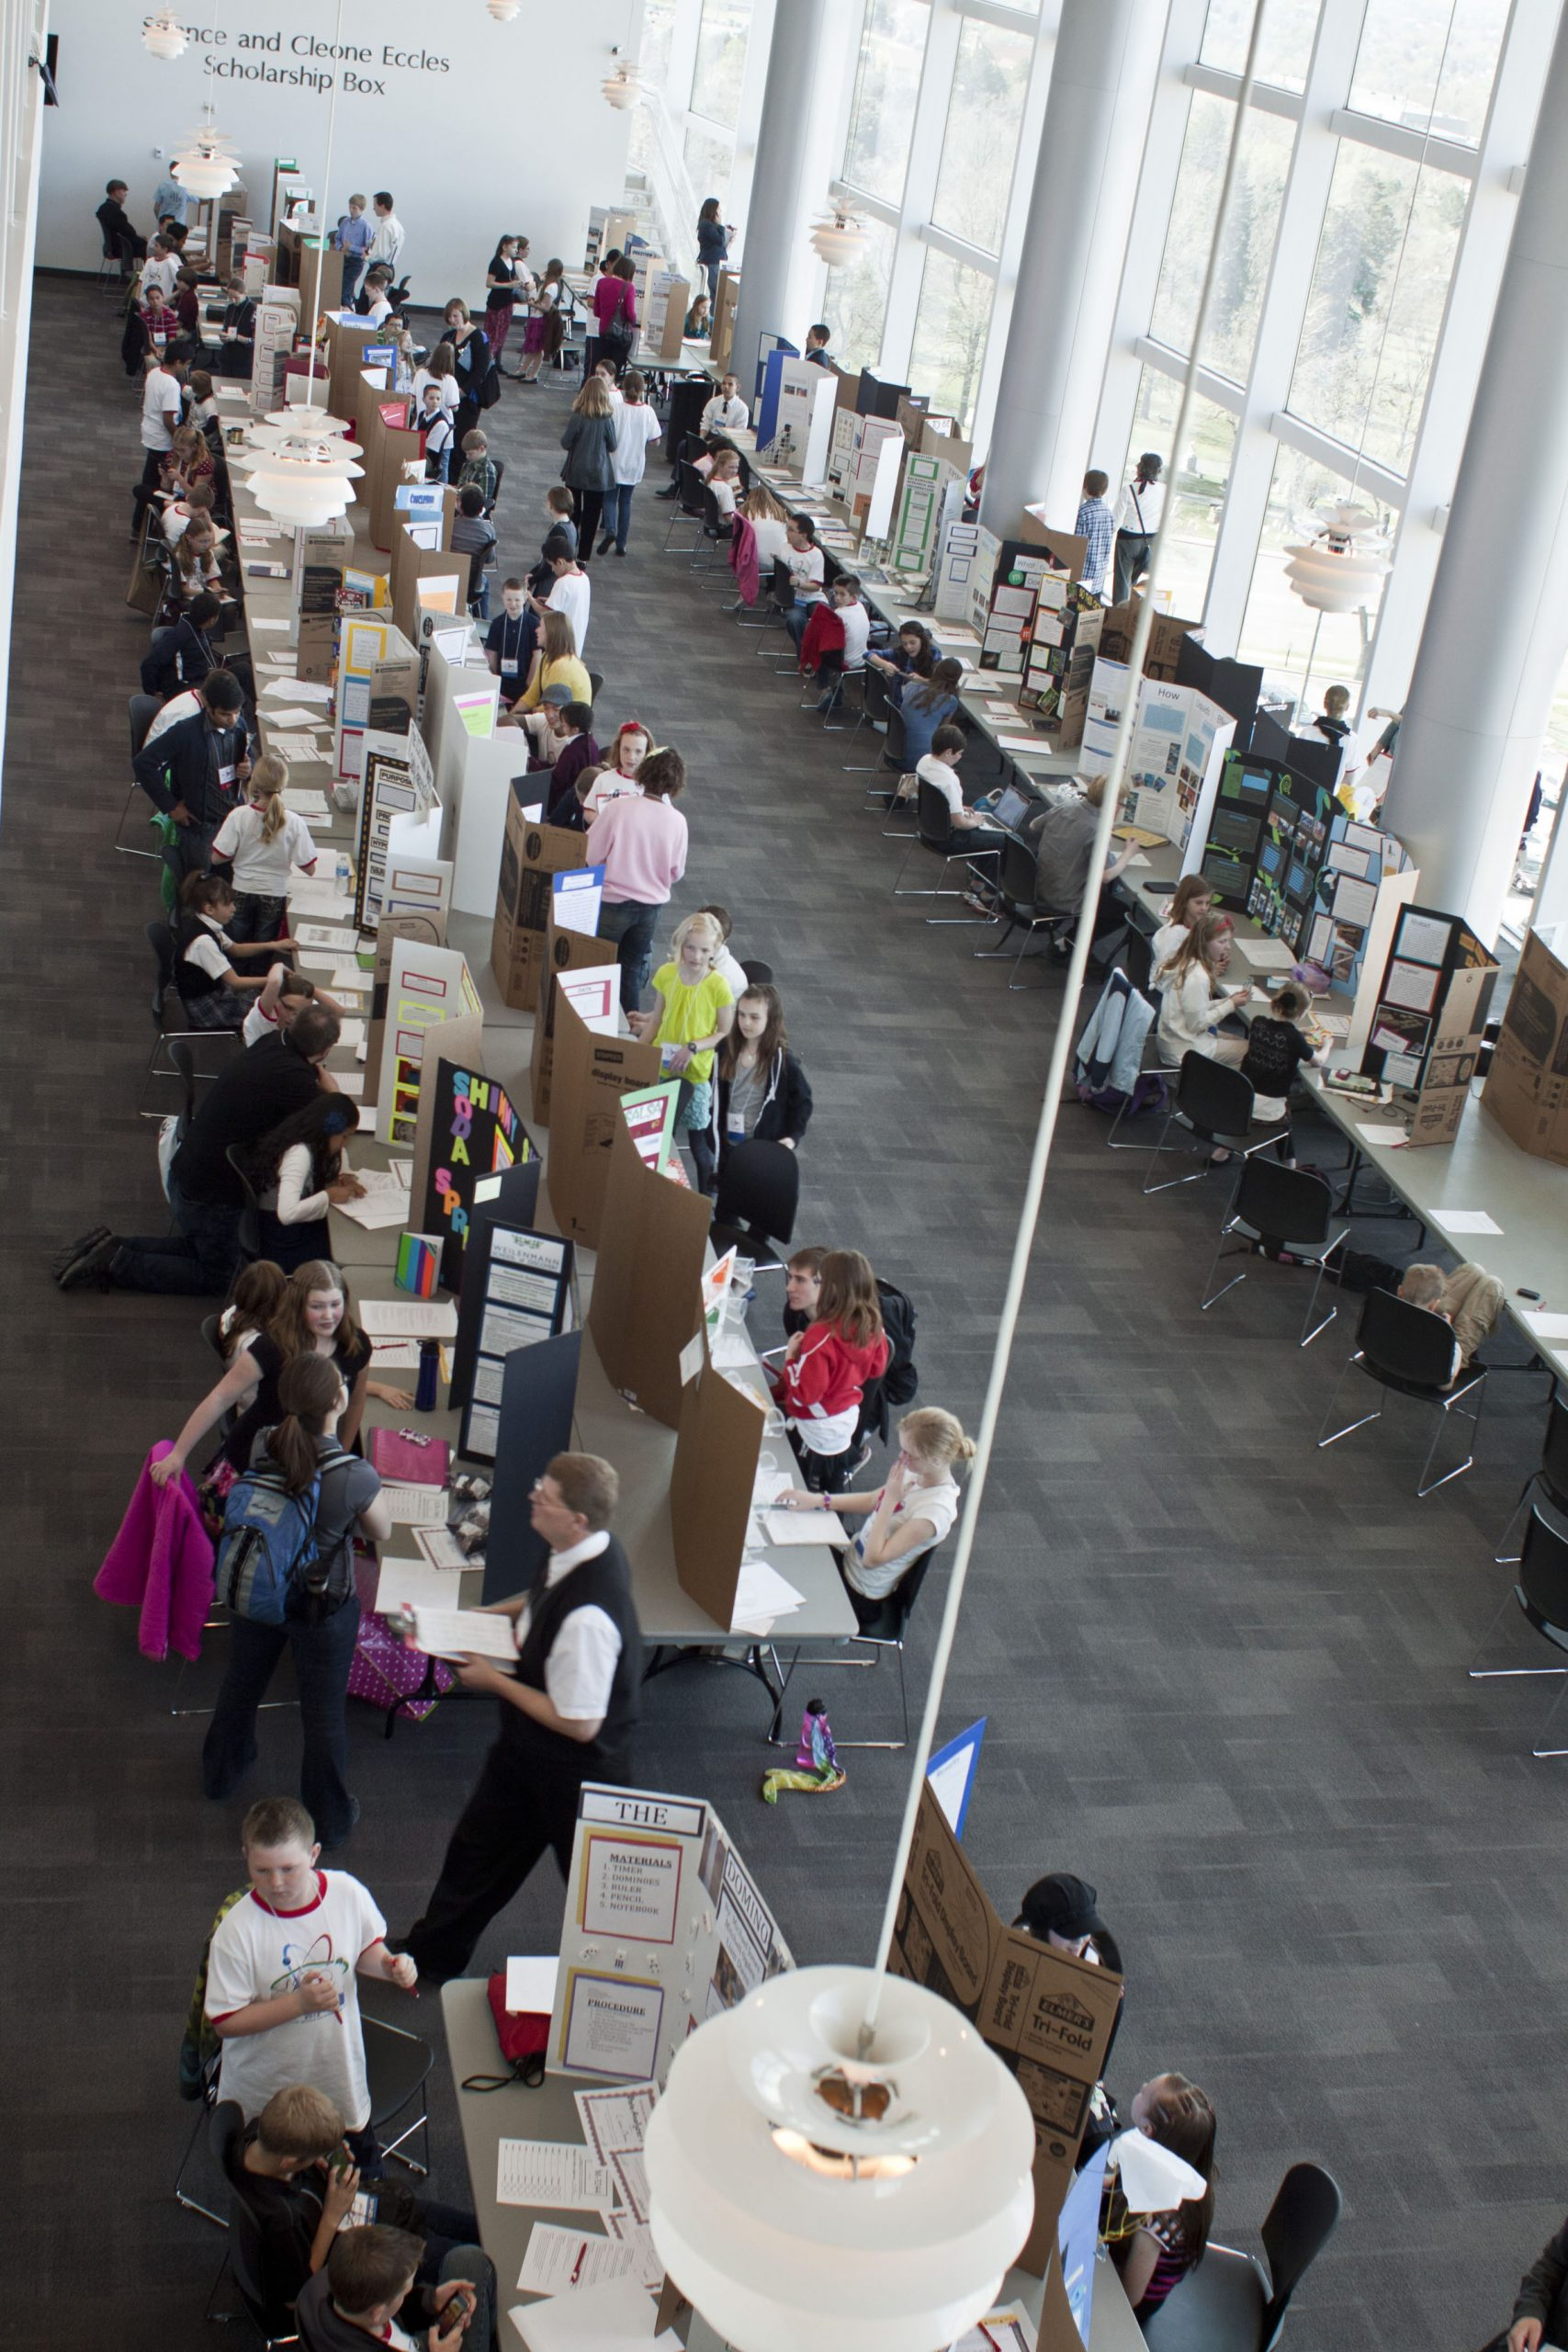 Elementary school students were among those participating in the Salt Lake Valley Science and Engineering Fair in 2012 on the University of Utah campus. This year's fair runs March 20-22 at Rice-Eccles Stadium tower.